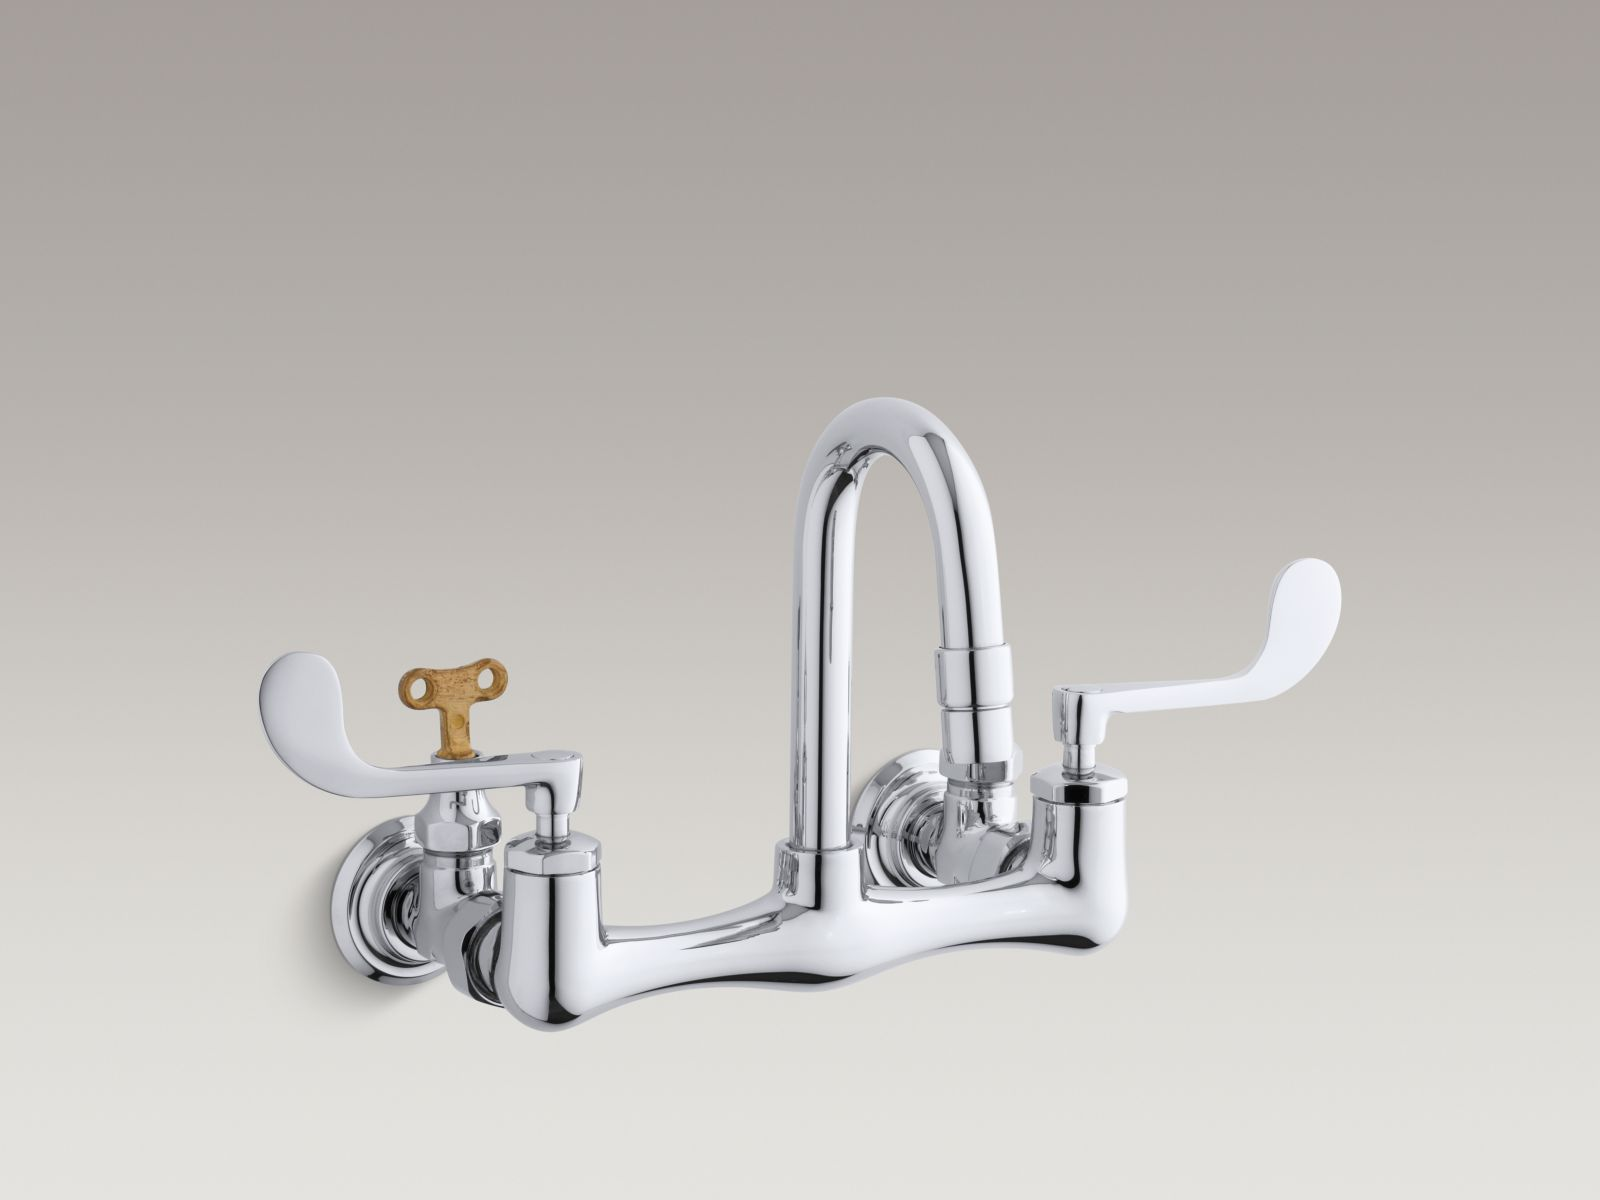 Kohler K-7308-5A-CP Triton Shelf-back Double Wristblade Handle Sink Faucet with Loose-key Stops Polished Chrome